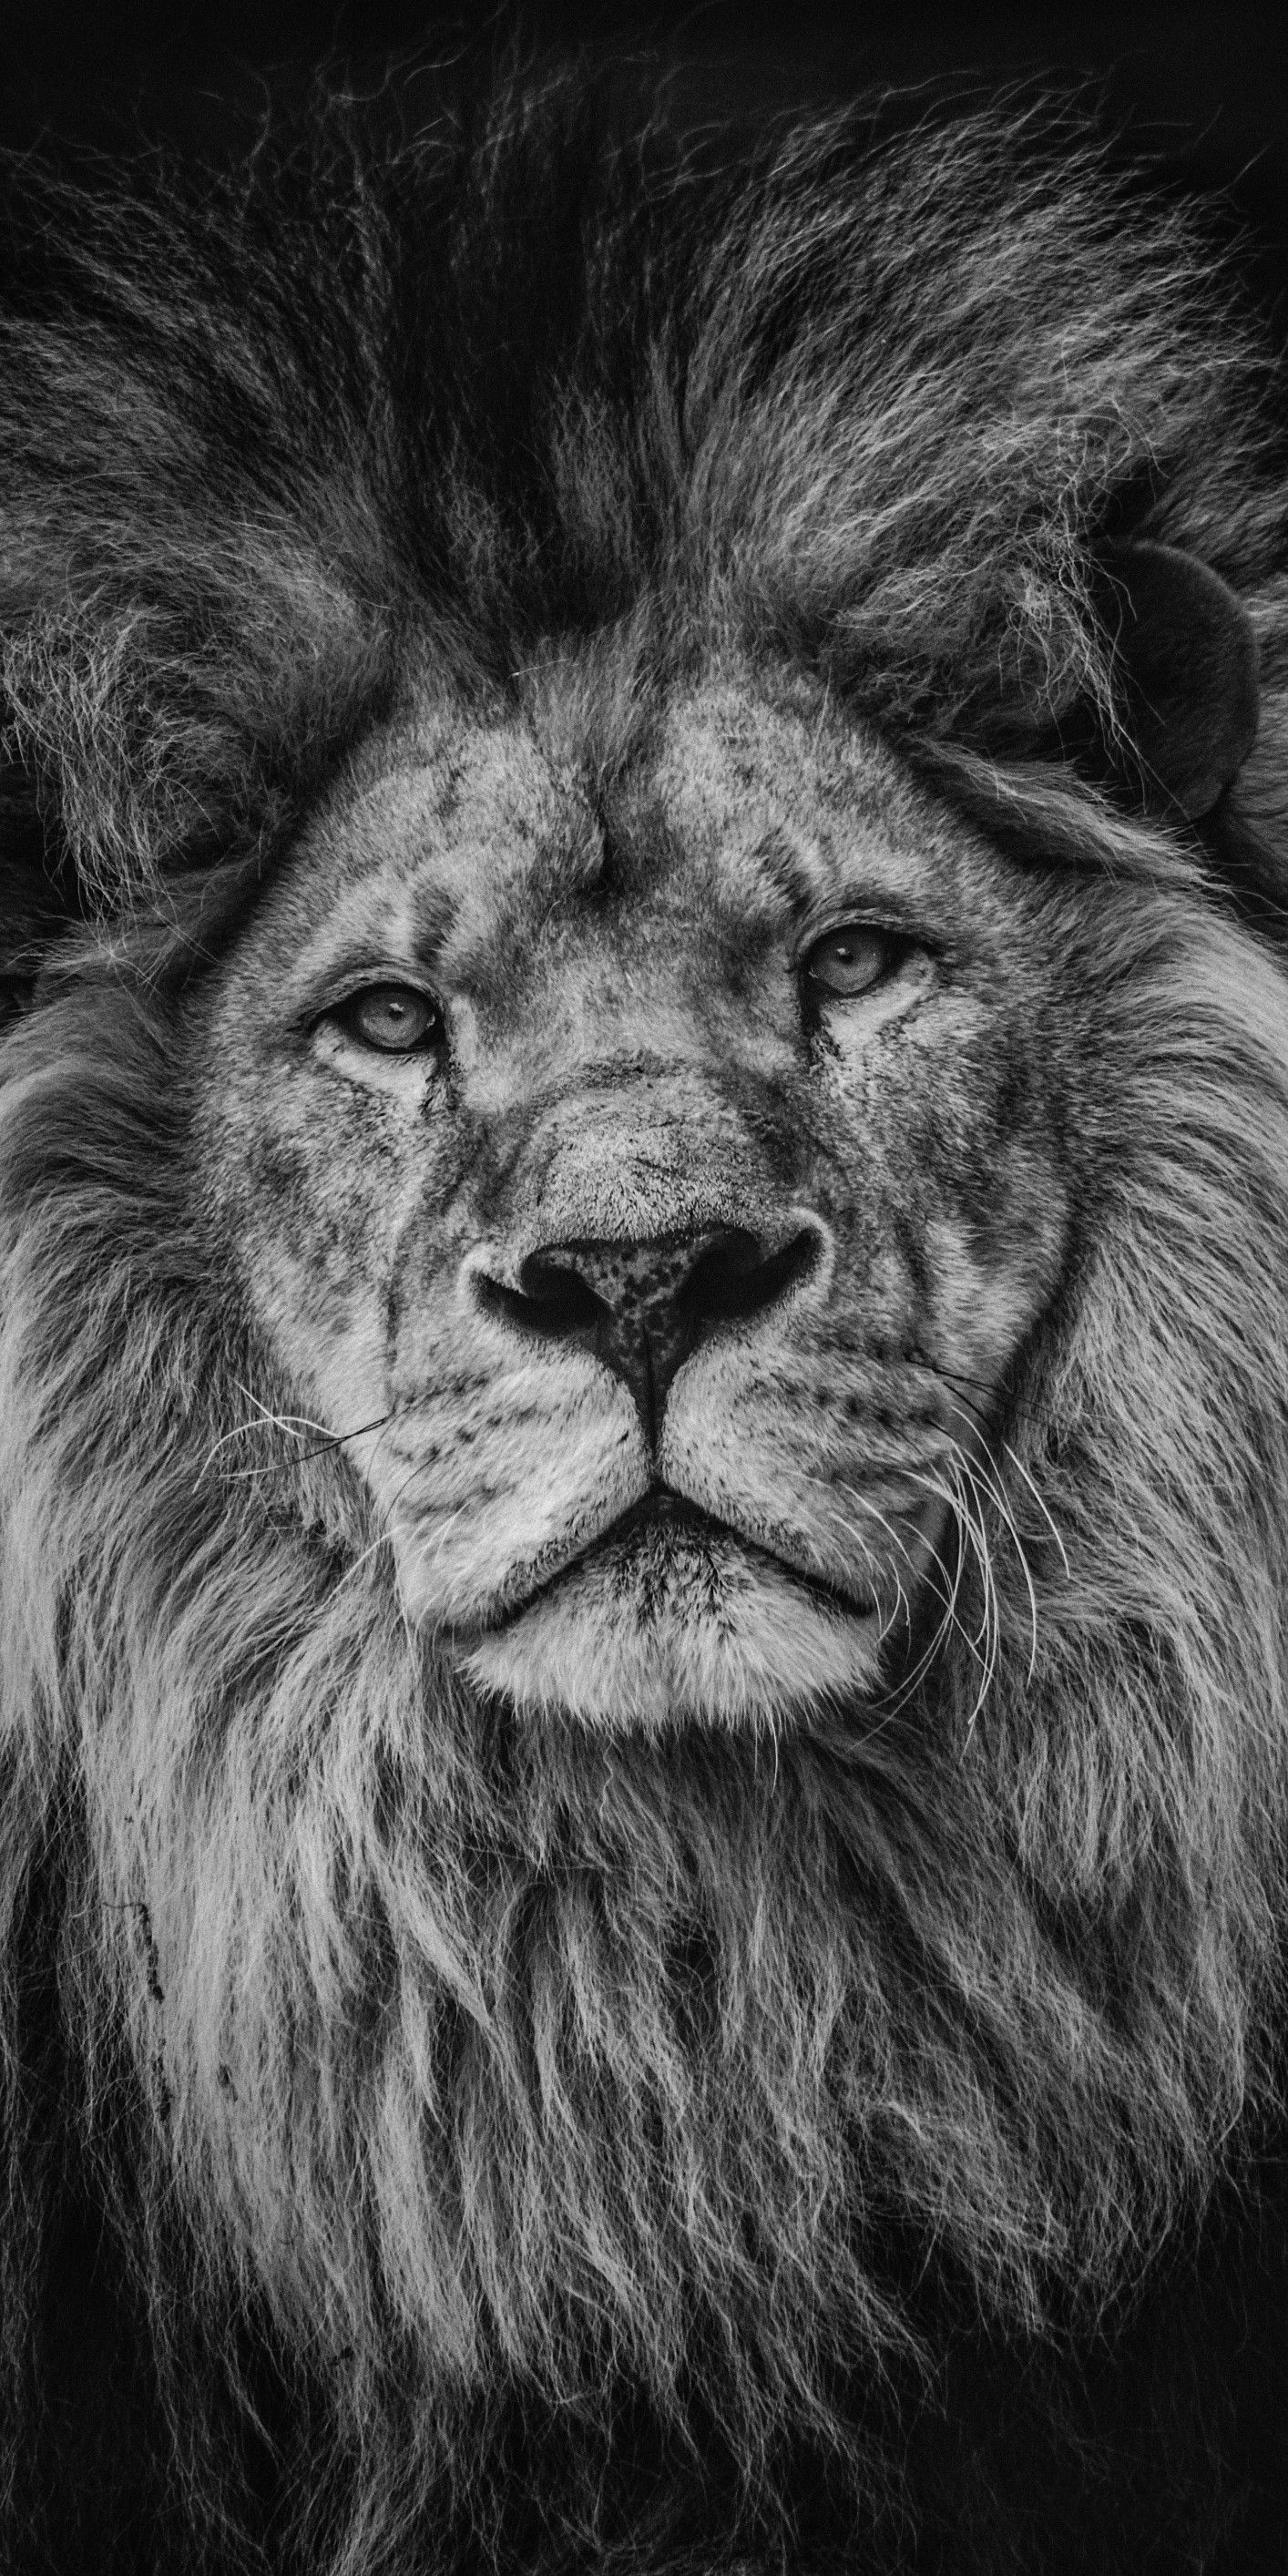 Pin By بروج ارمغان On Black White Lion Images Lion Pictures Lions Photos